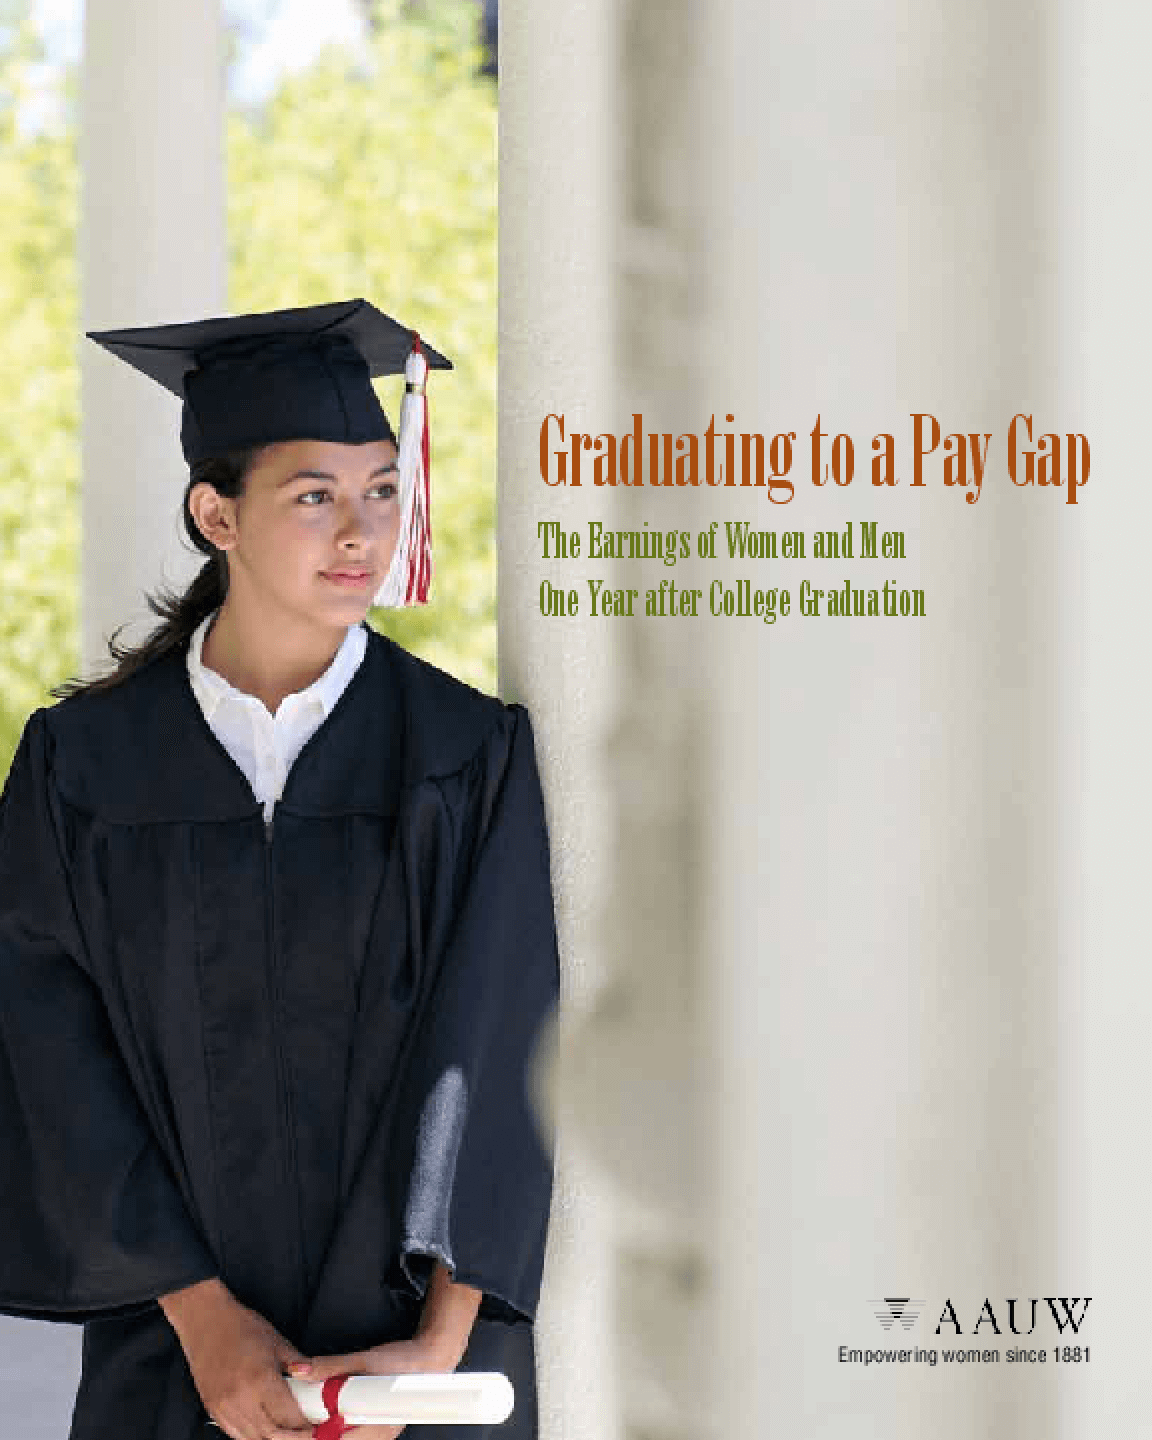 Graduating to a Pay Gap: The Earnings of Women and Men One Year After College Graduation